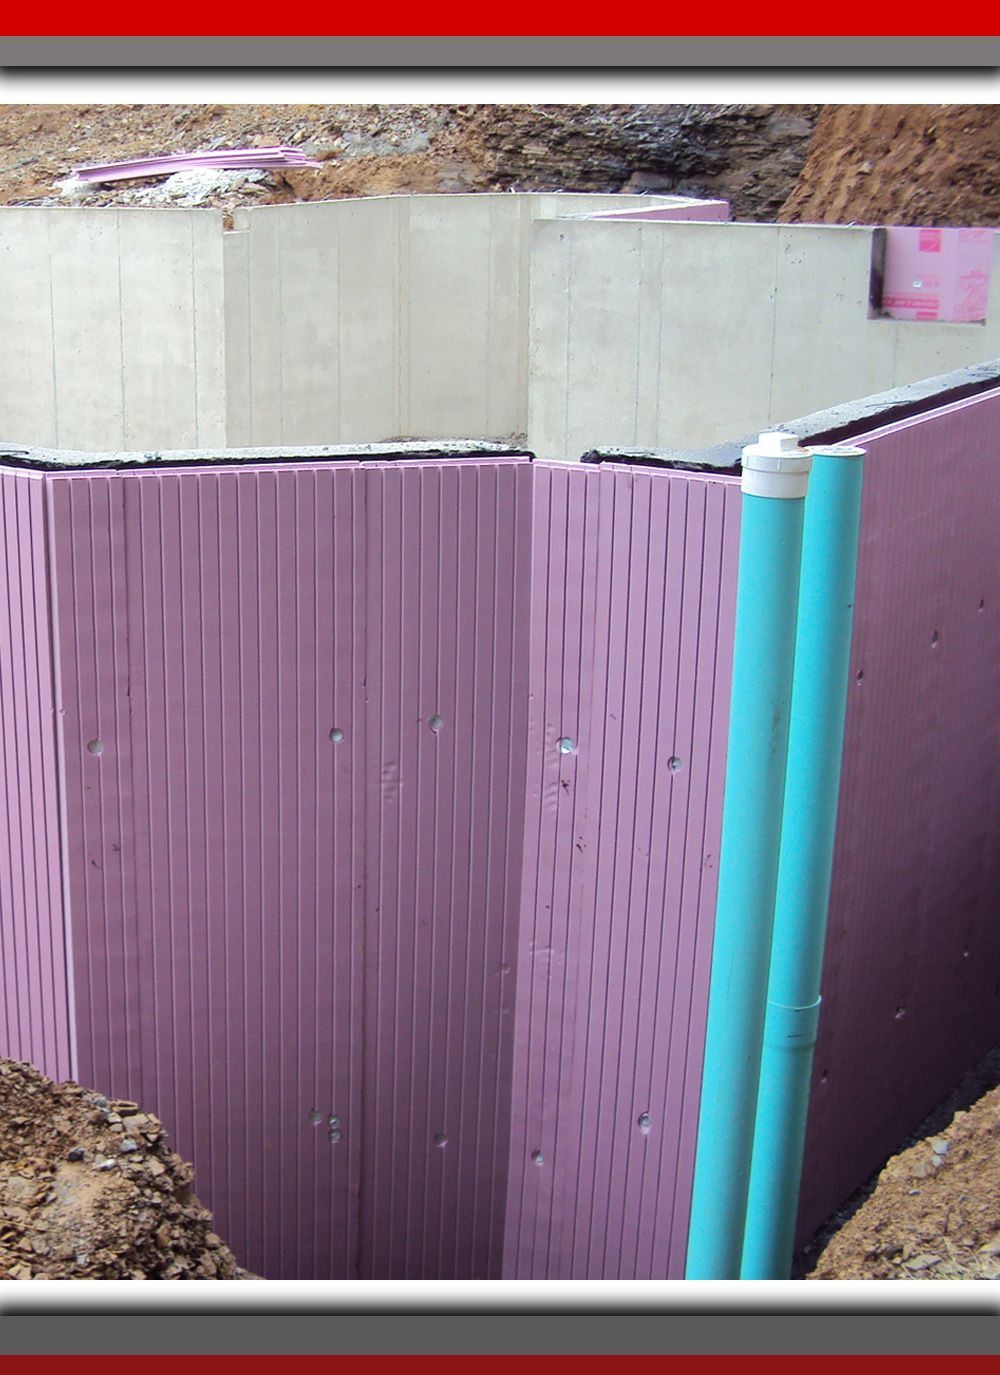 Concrete Walls Have Low Insulating Value, Which Means Cold From The Ground  Transfers Directly Into